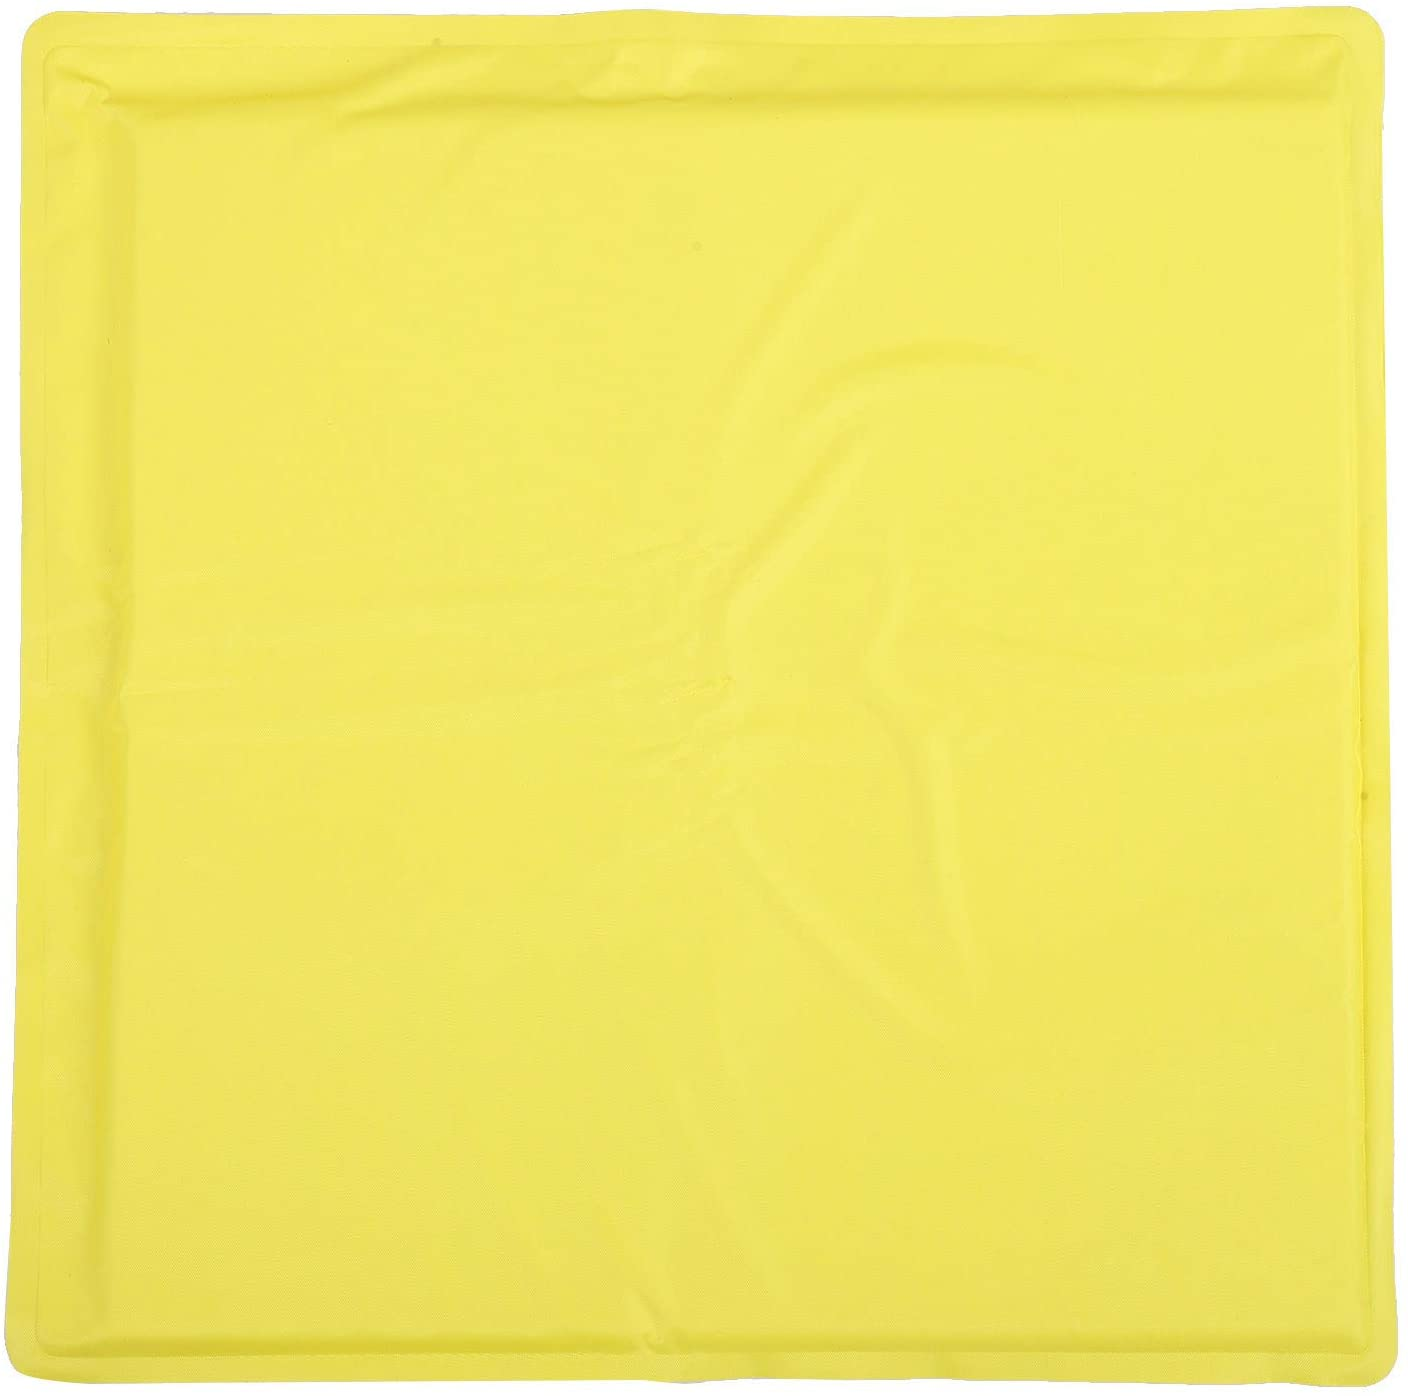 Zerodis Pet Pee Pad, Non-Slip Foldable Reusable Portable Dog Pads Washable Waterproof Puppy Pads Pet Bed Pad Sleeping Pee Mat for Dogs Cats Pet Supplies